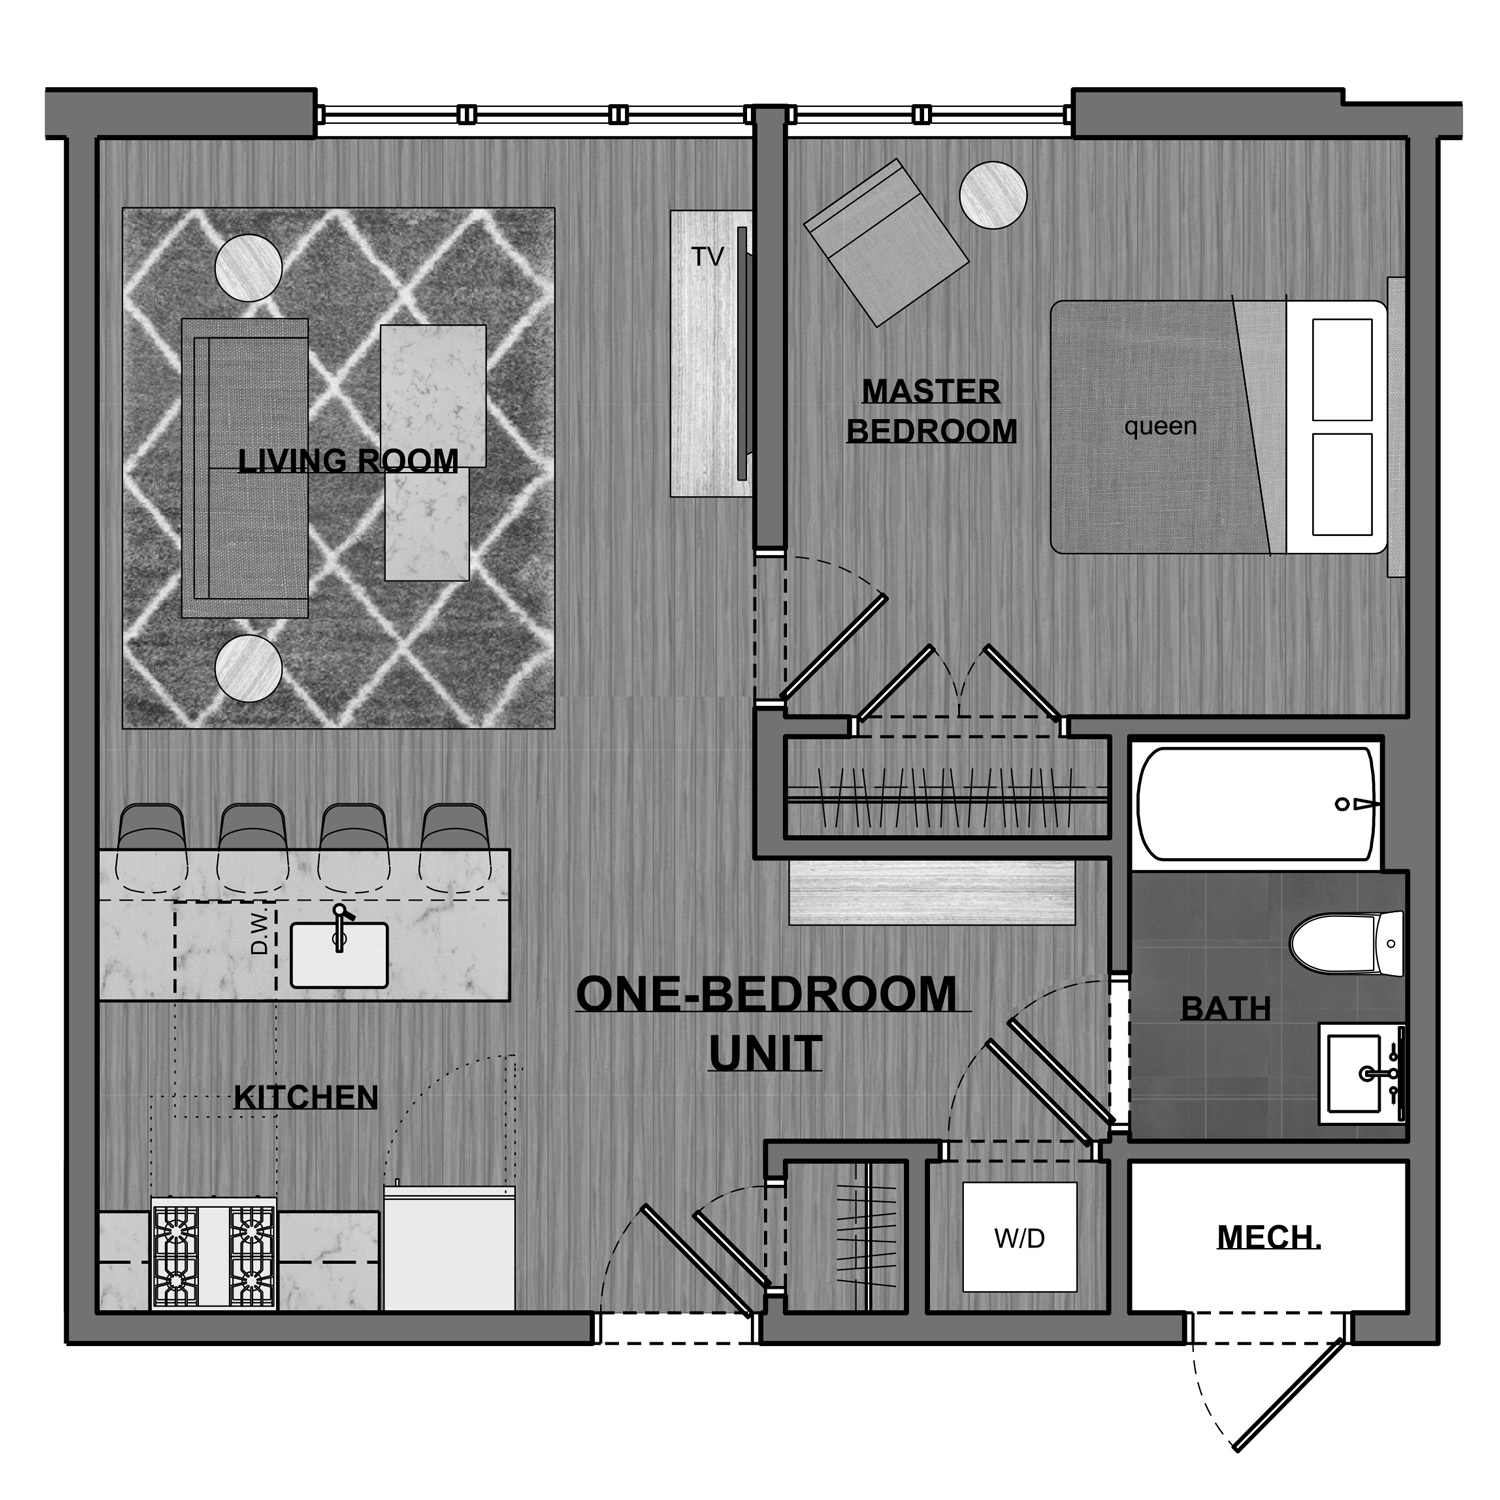 KRAMS 1 bedroom floor plan